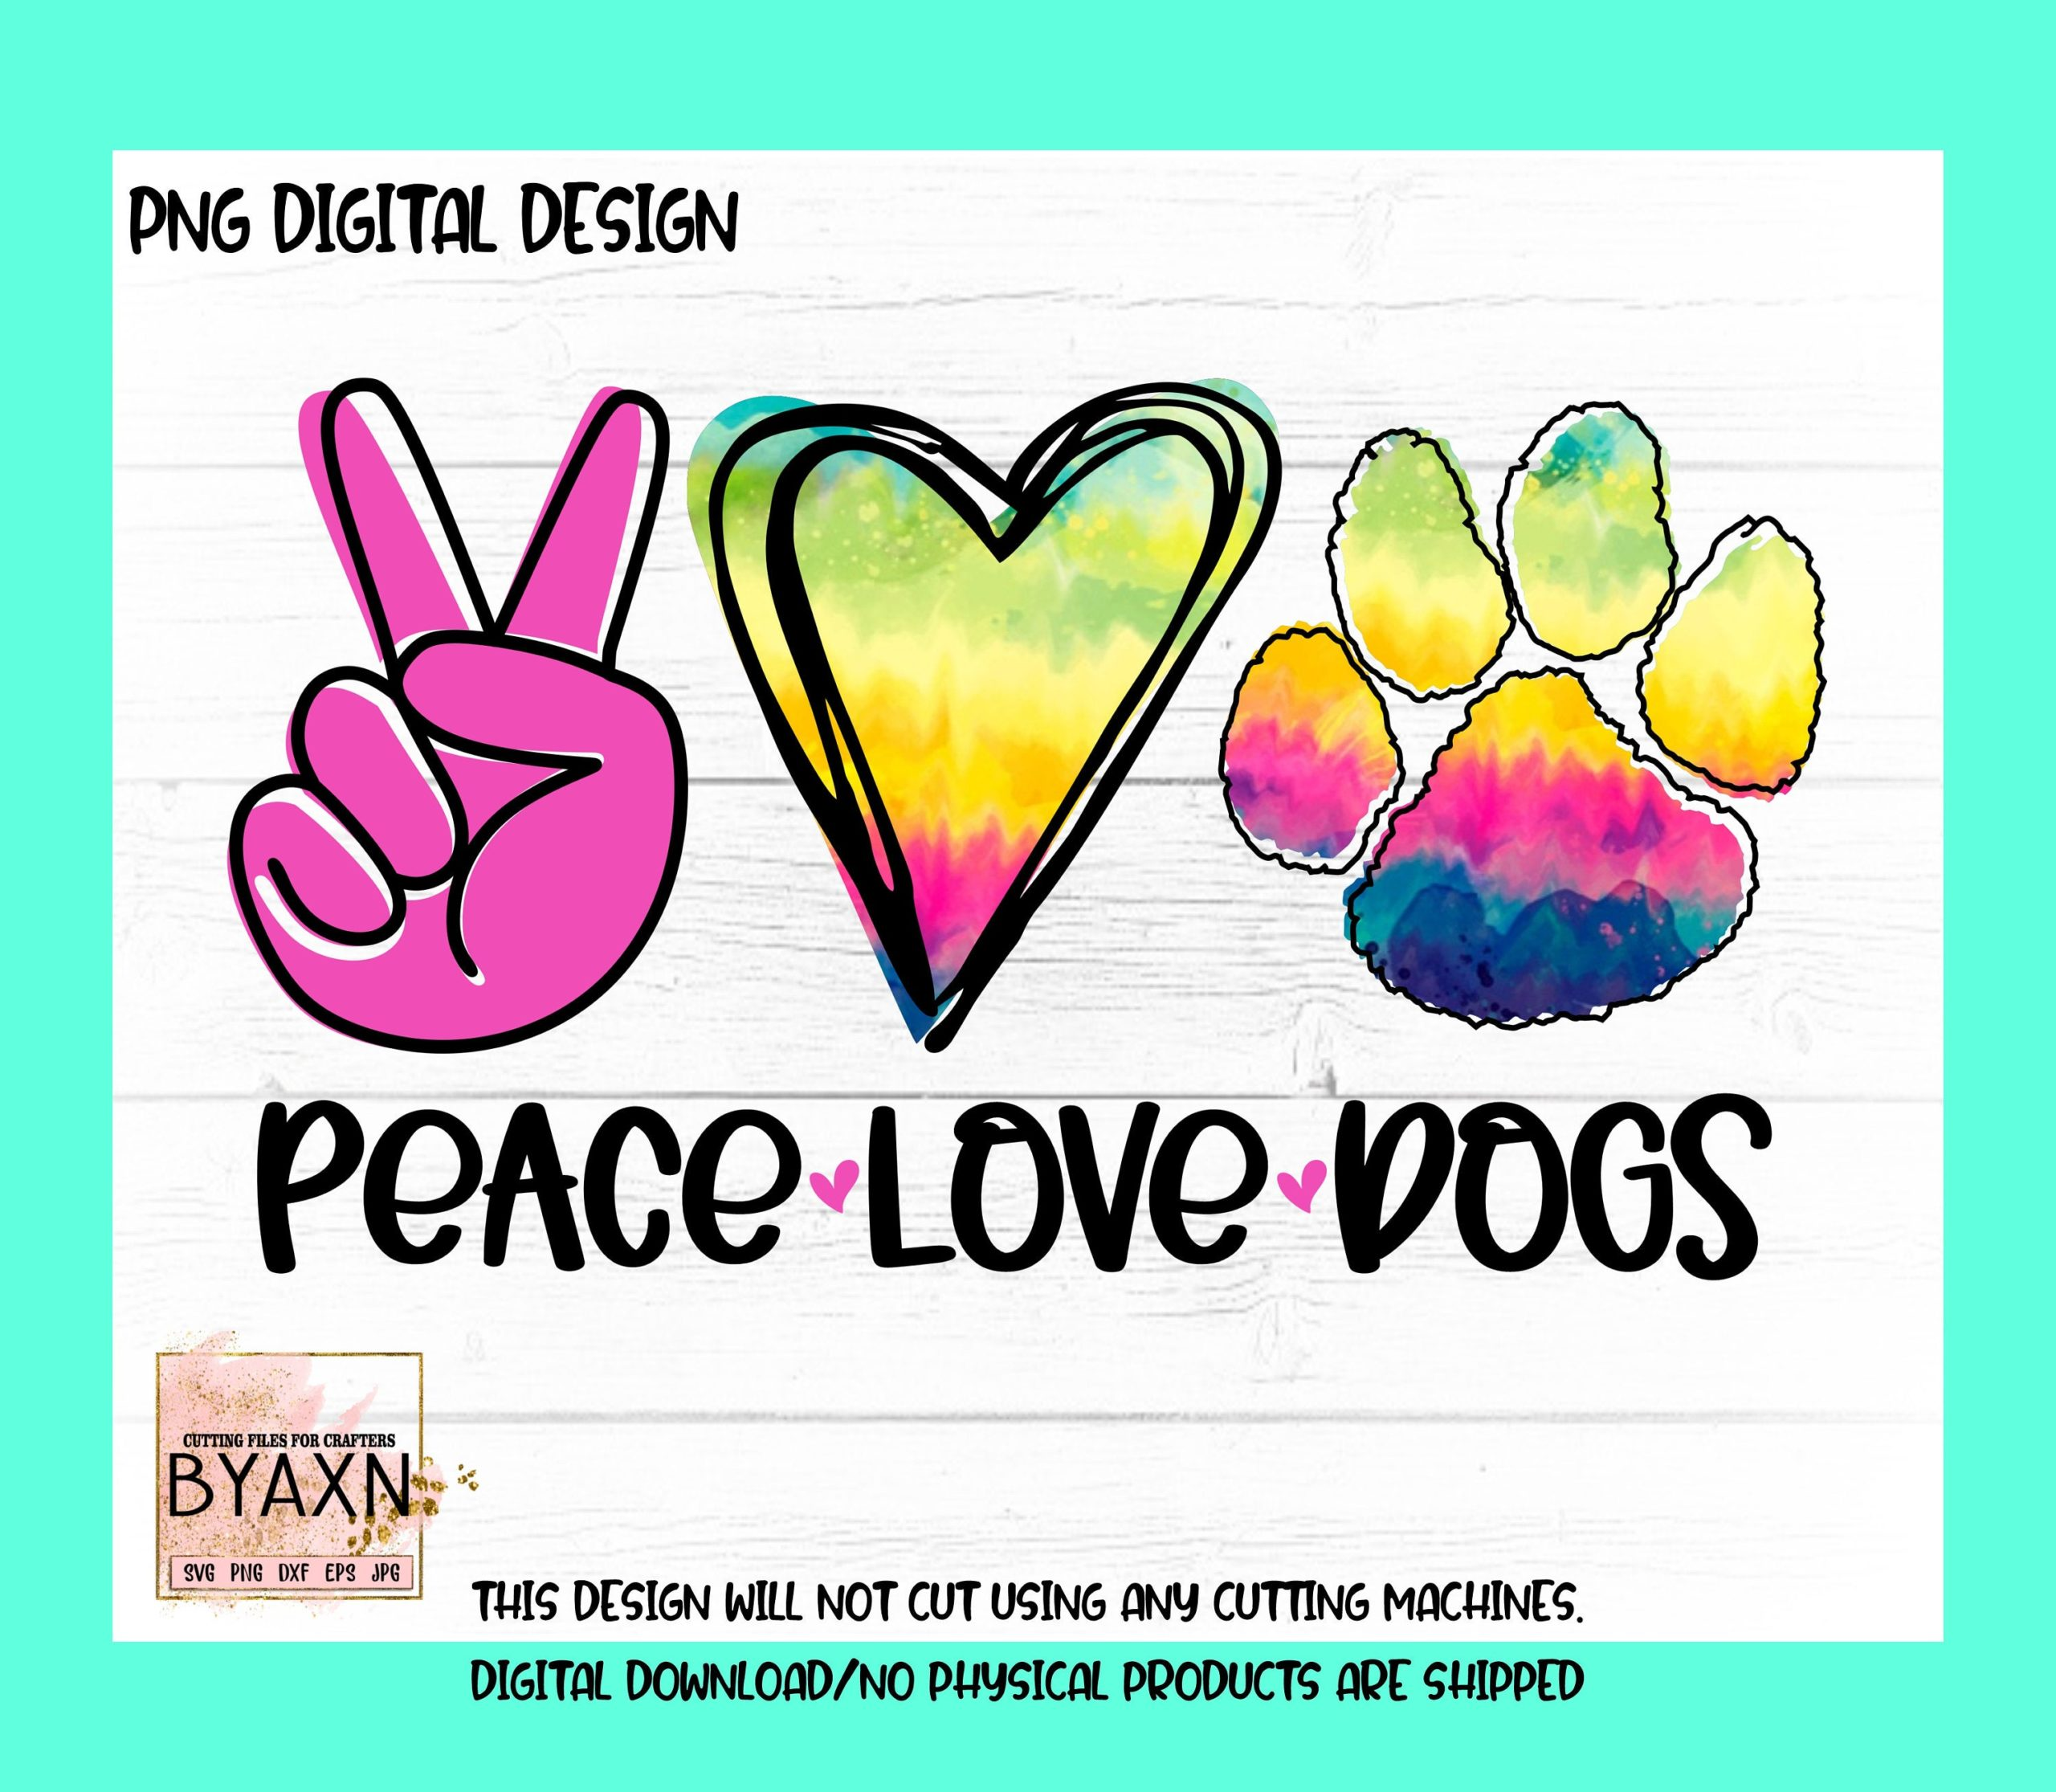 Peace-love-dogs-png-tie-dye-png-print-file-for-sublimation-christian-sublimation-peace-love-png-sublimation-png-designs-png-designs-60514940